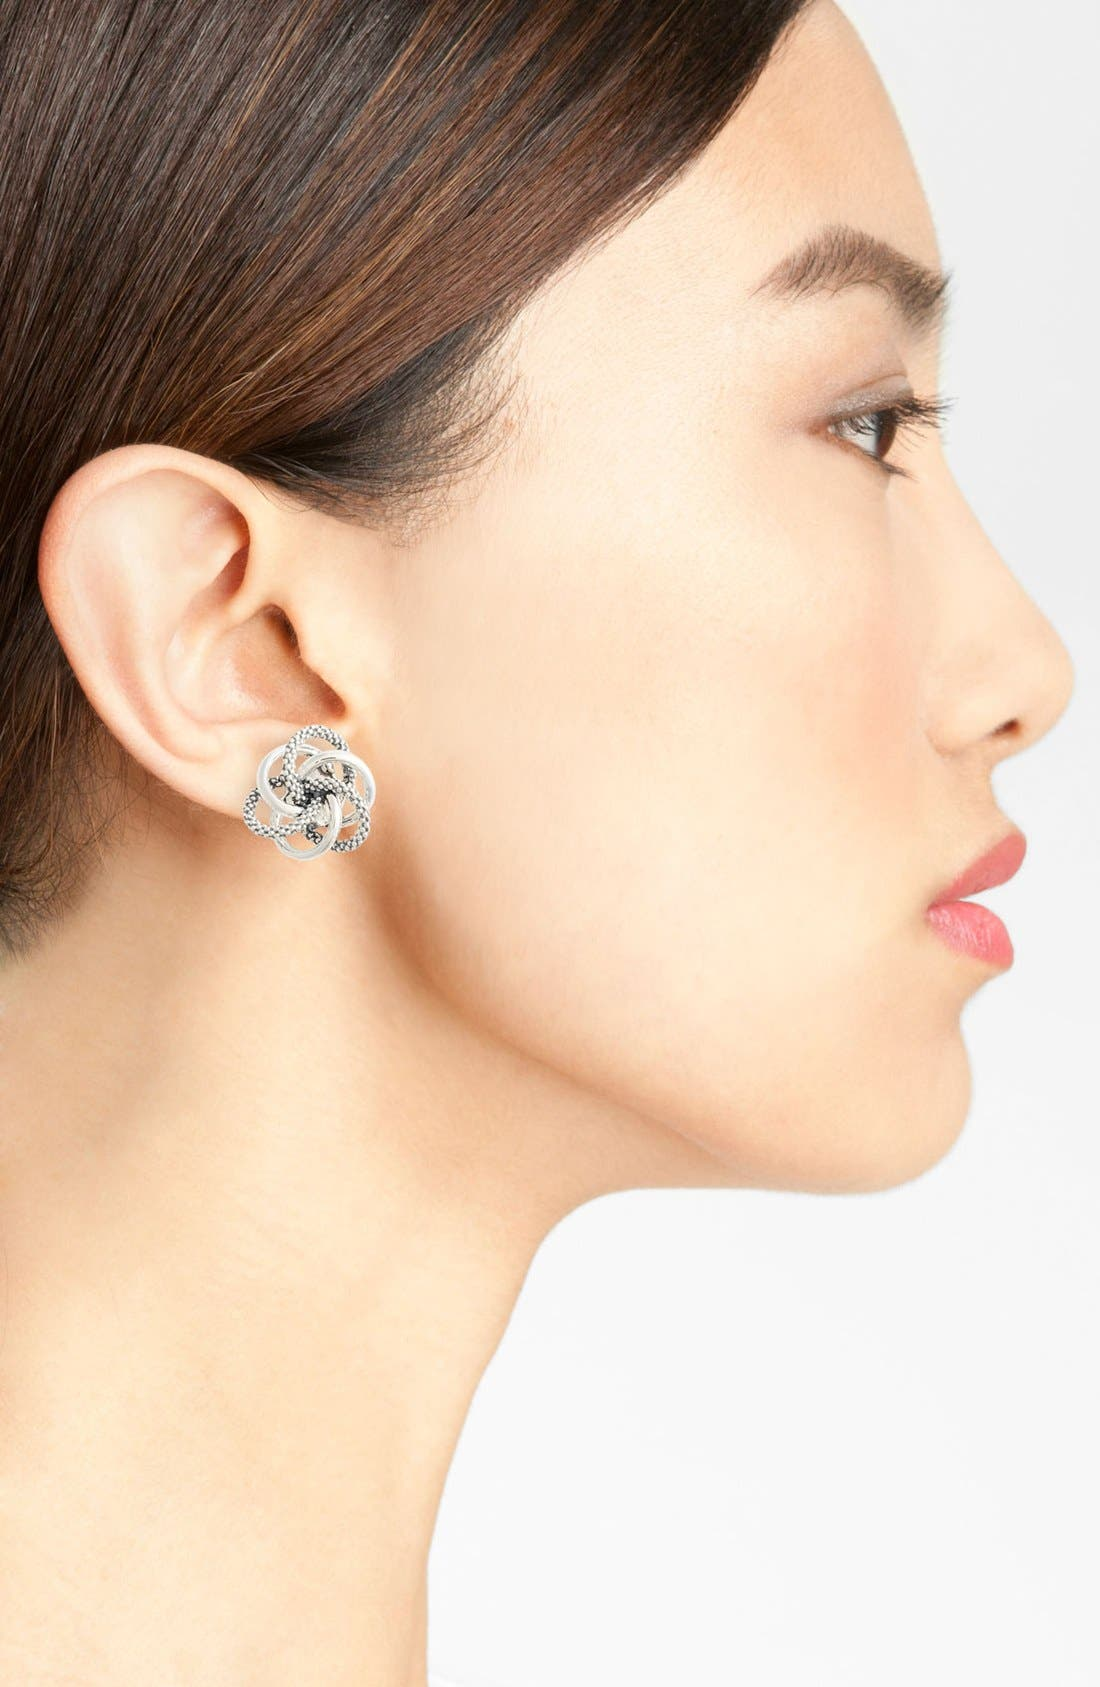 Caviar<sup>™</sup> Stud Earrings,                             Alternate thumbnail 4, color,                             STERLING SILVER